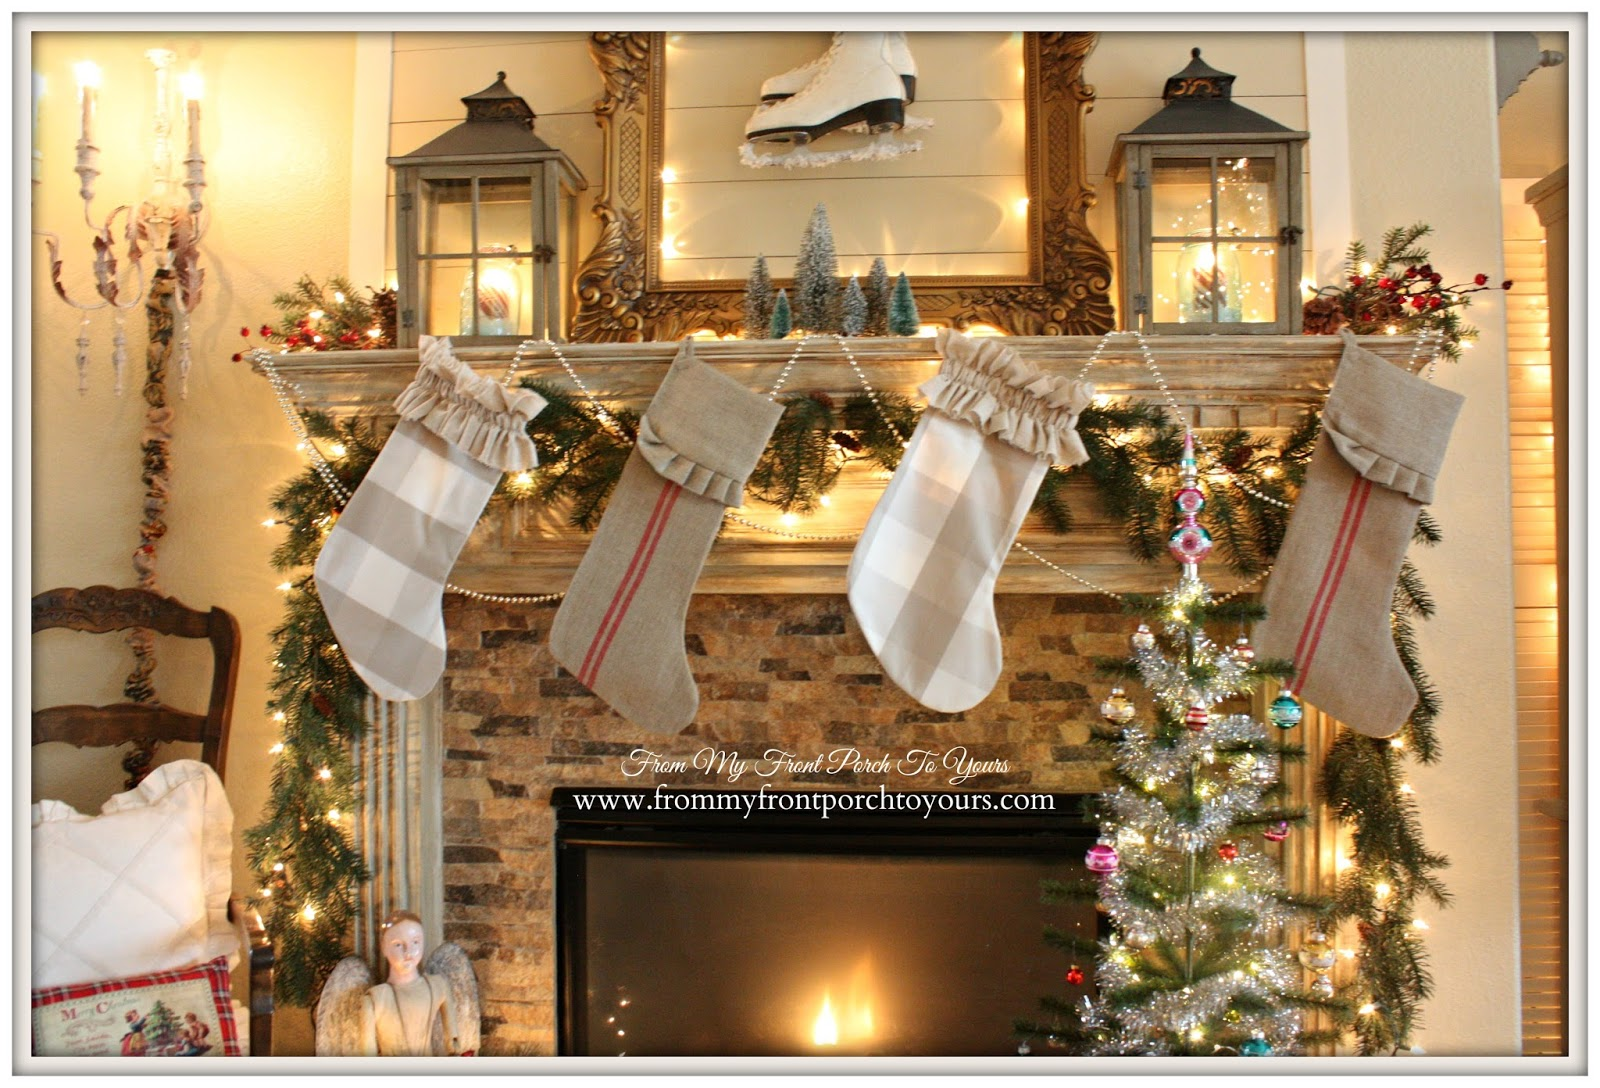 Grain Sack Christmas Stockings- Buffalo Check Christmas Stockings-French Farmhouse Vintage Christmas Mantel 2014- From My Front Porch To Yours